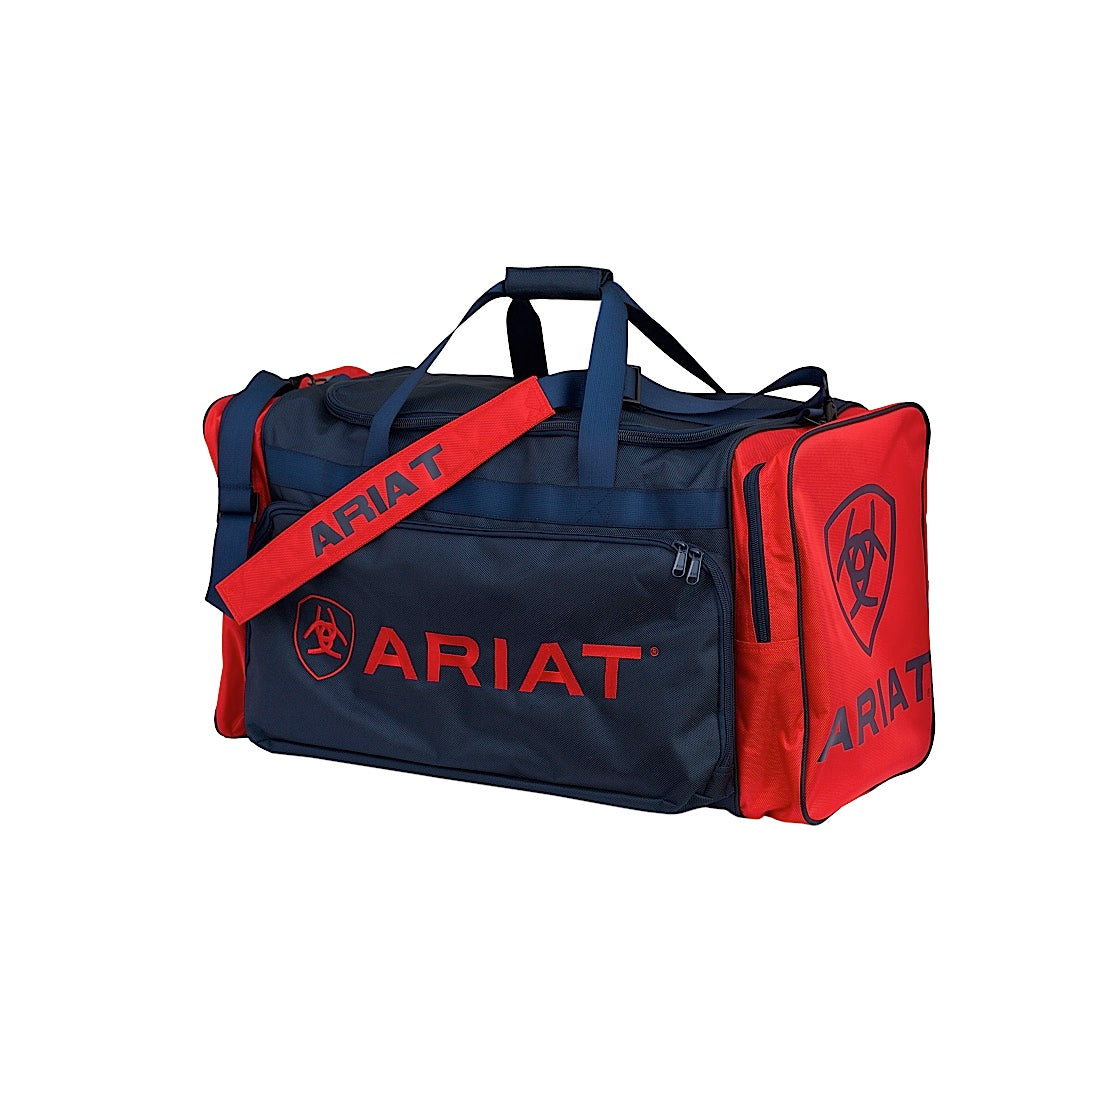 Ariat Junior Gear Bag Red/Navy